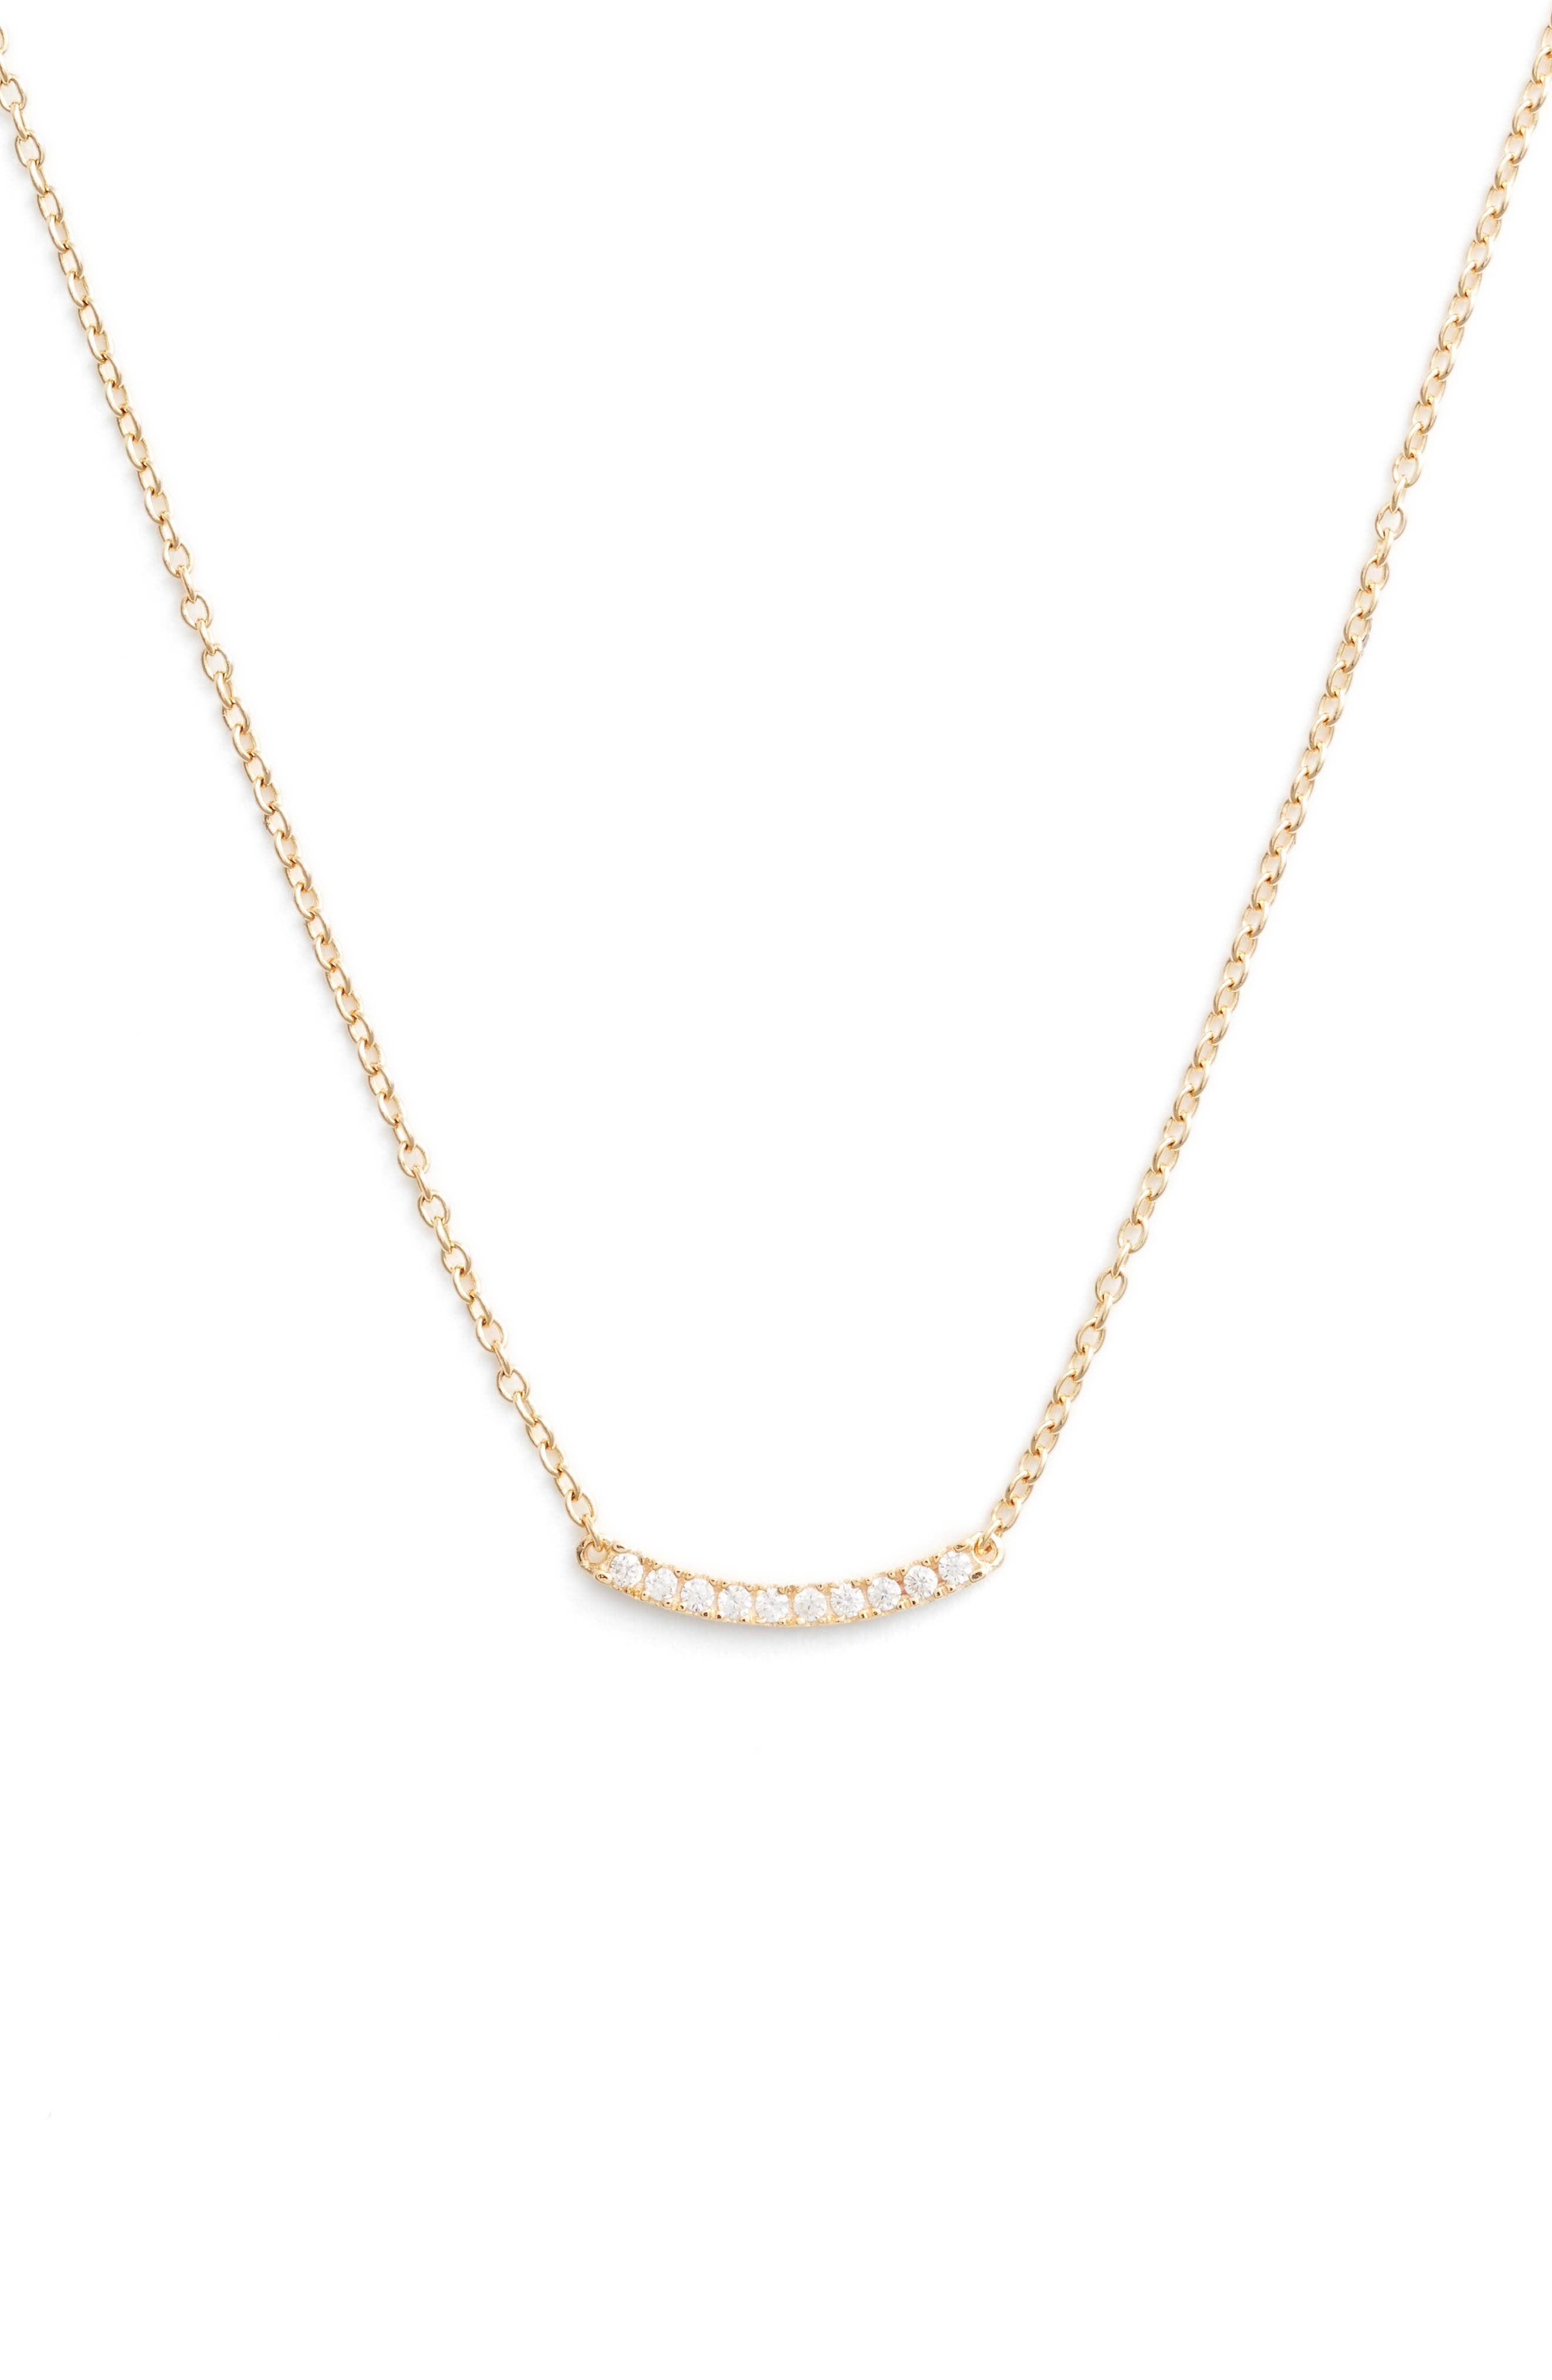 Nordstrom Pavé Curved Bar Pendant Necklace